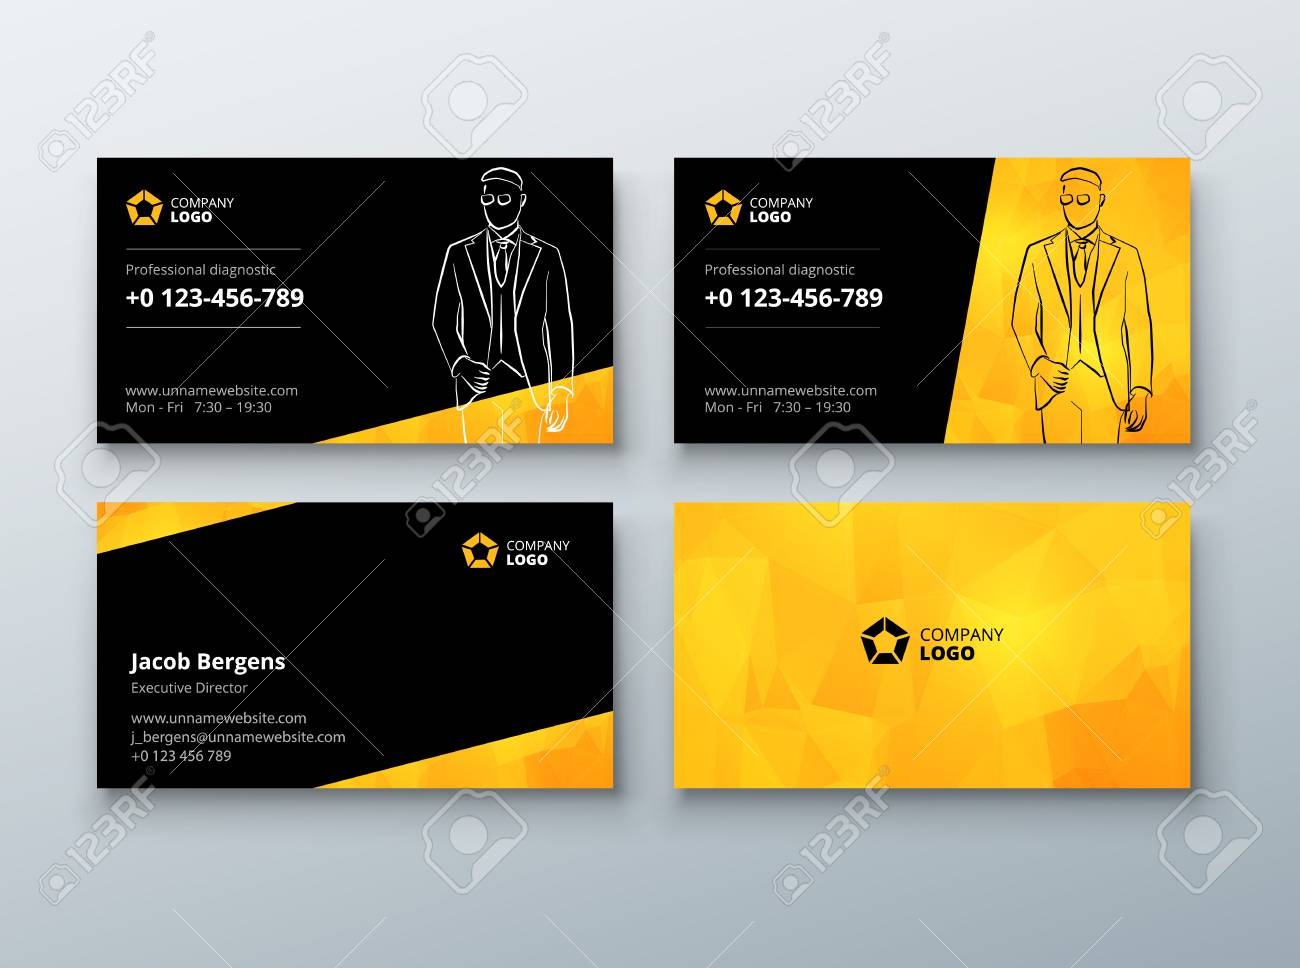 Business Card Design Black Yellow Business Card Template For Royalty Free Cliparts Vectors And Stock Illustration Image 74640845